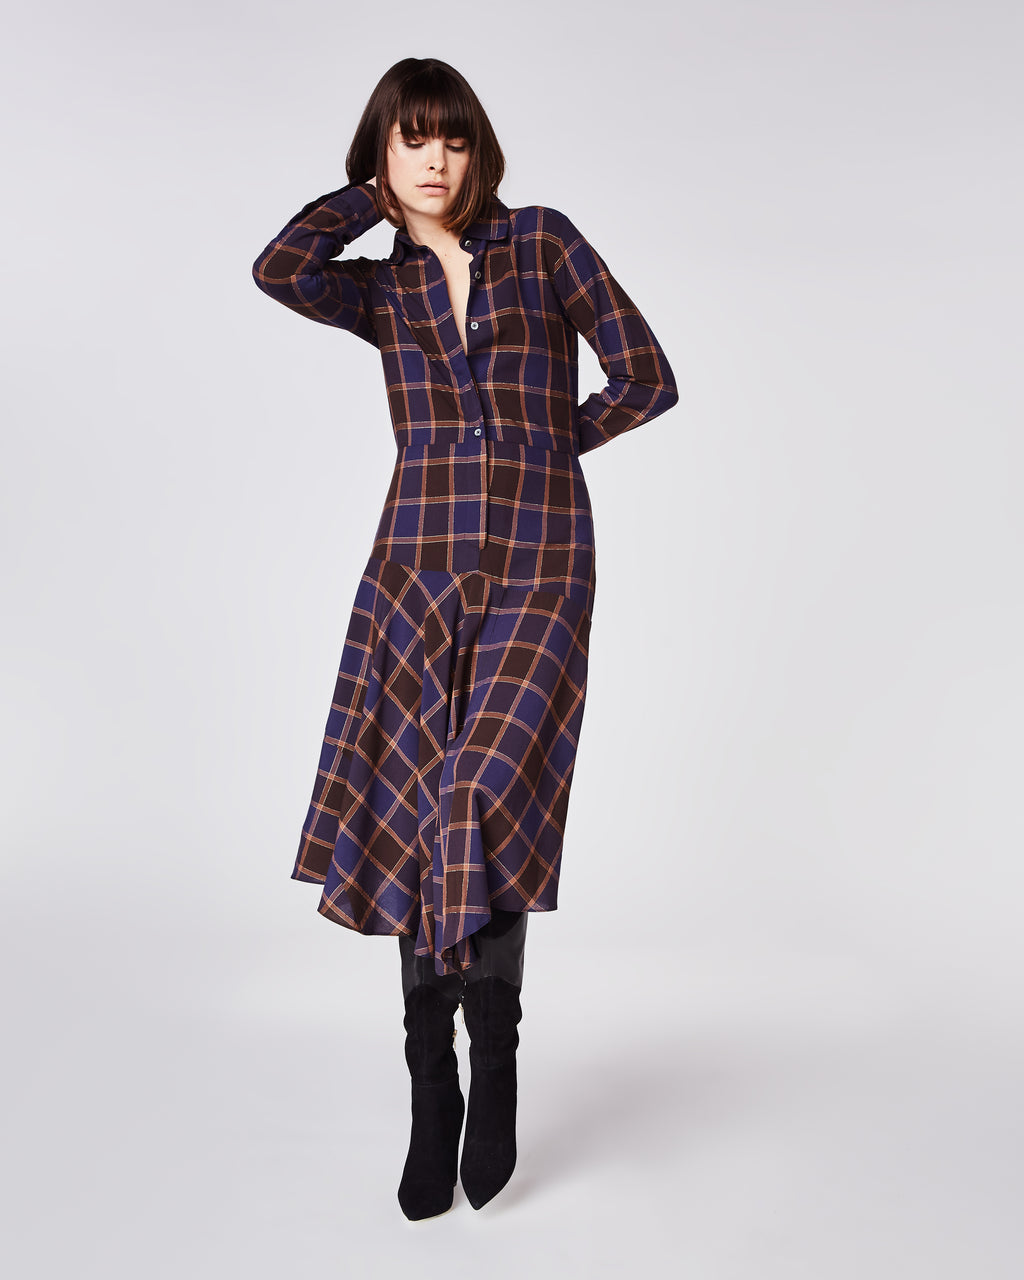 BS10163 - BOYFRIEND PLAID HANDKERCHIEF SHIRT DRESS - dresses - midi - In a modern blue and orange plaid, this long sleeve dress features a drop waist and button downclosure. Paired with sneakers for a casual day time look or boots for an evening out.